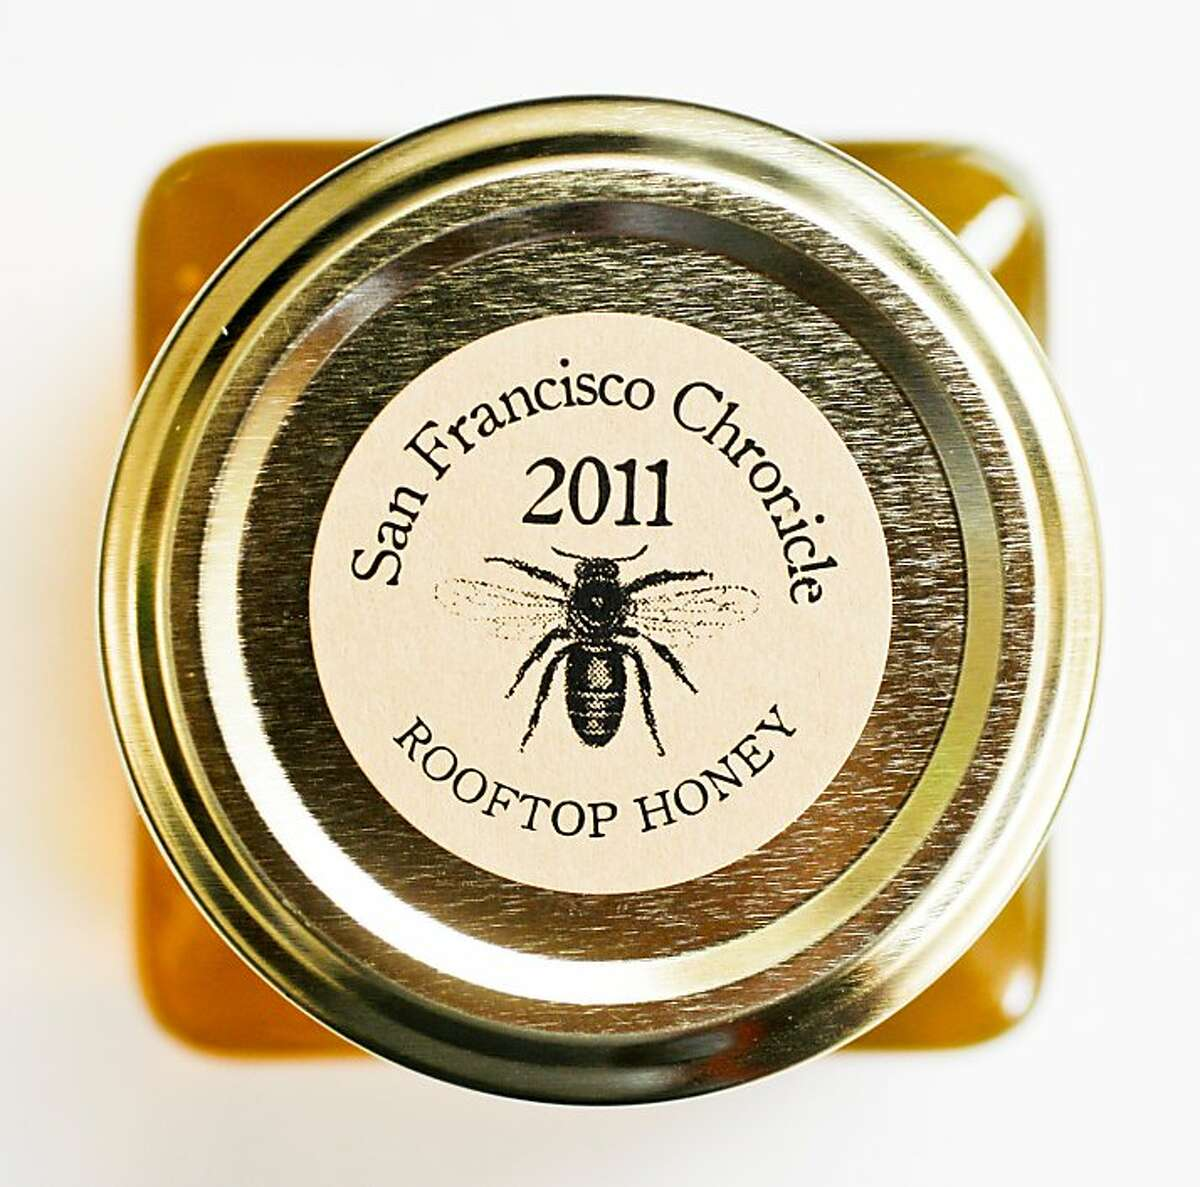 The Chronicle's Rooftop Honey label